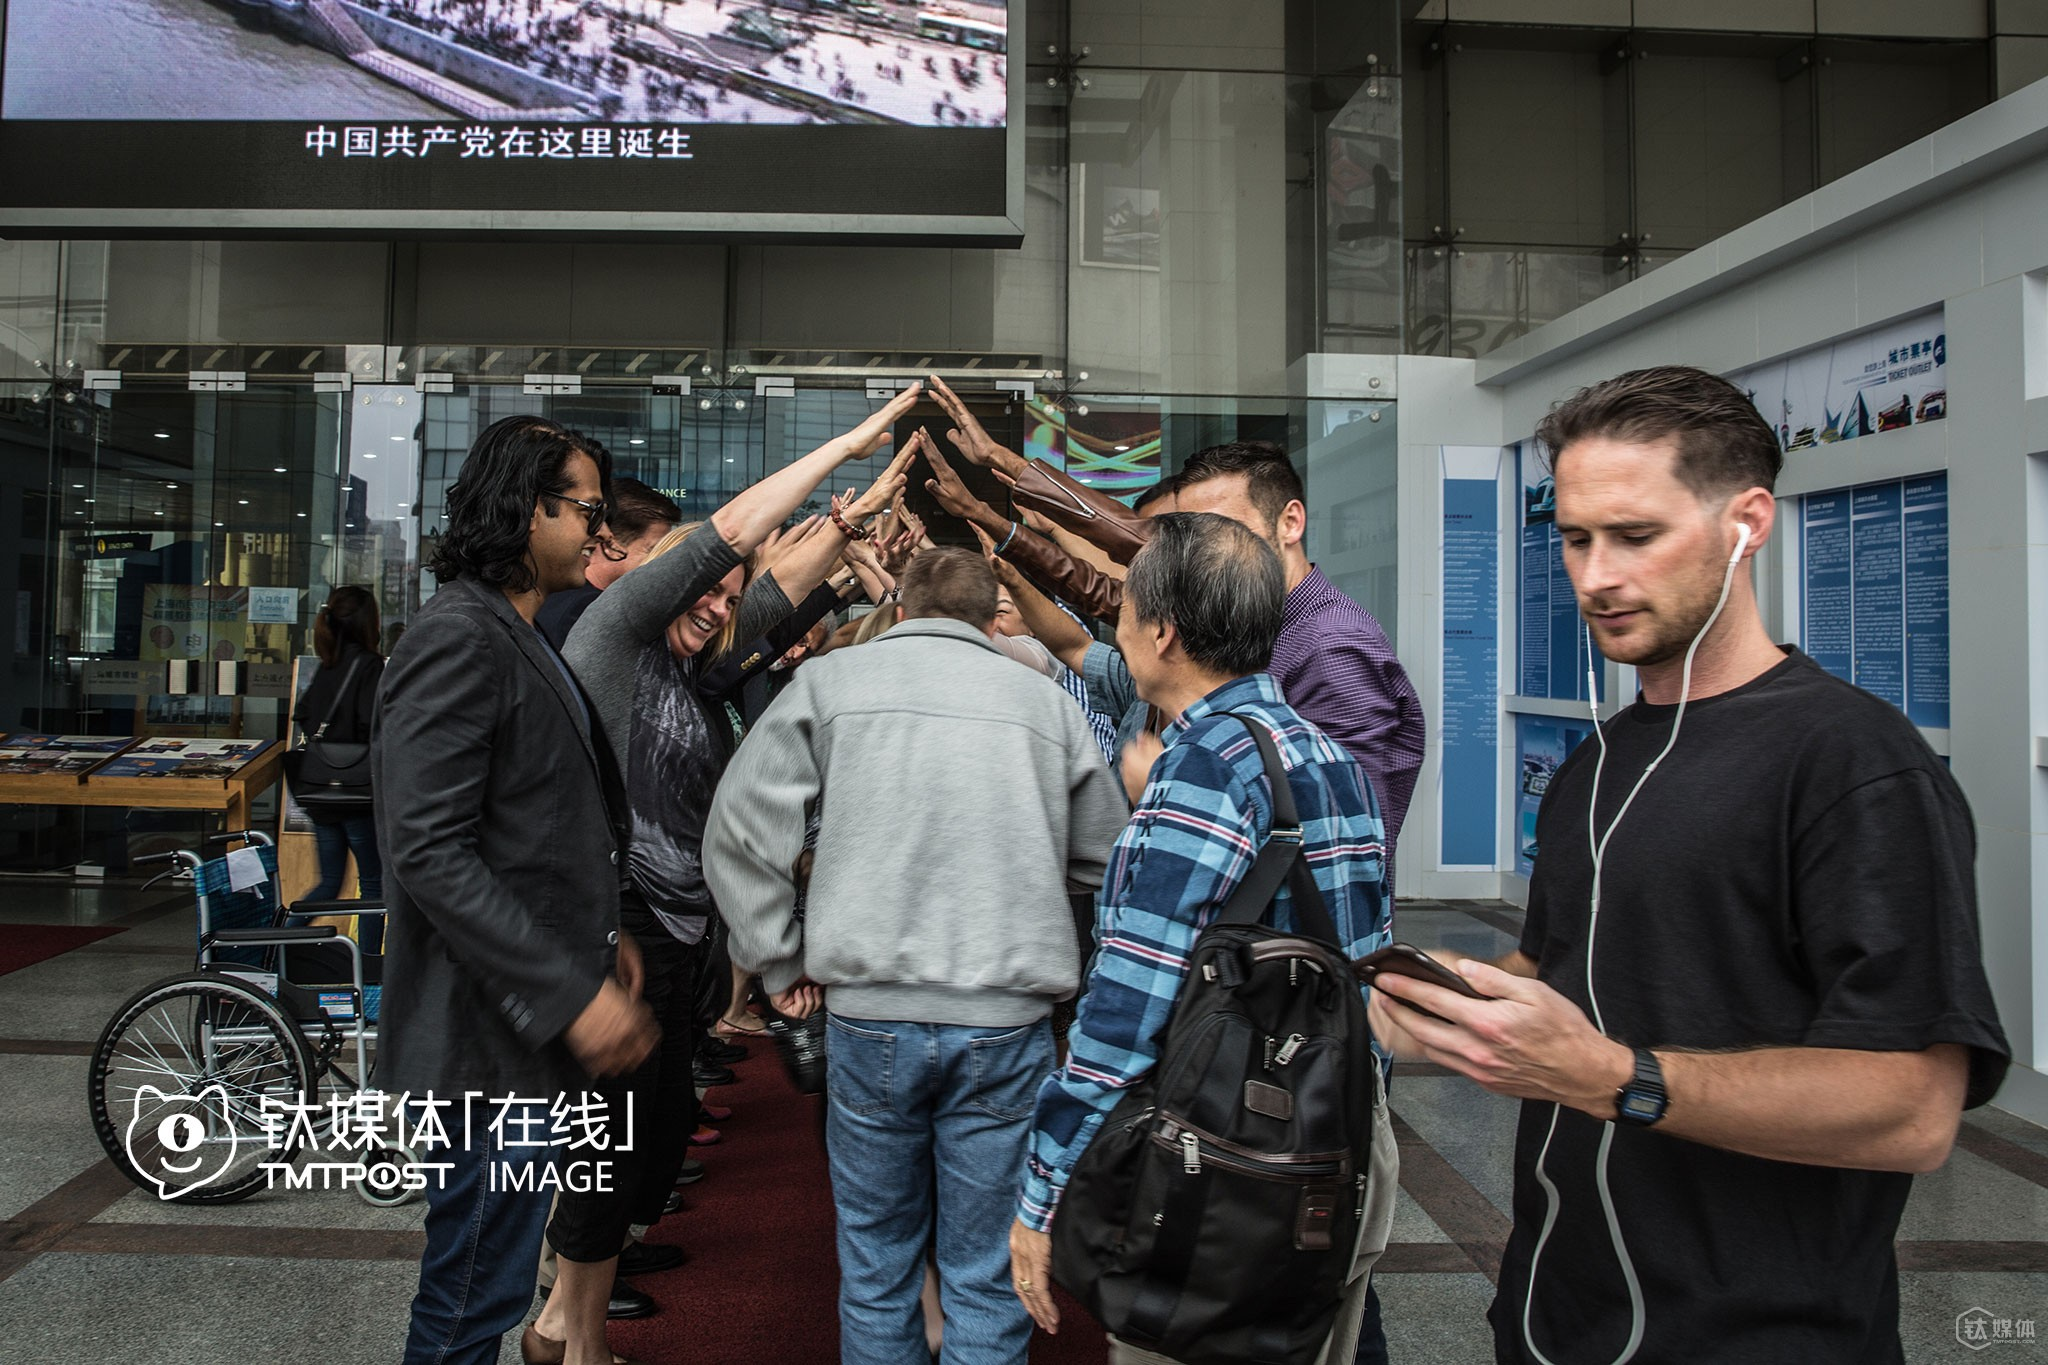 """Outside of Shanghai Urban Planning Exhibition Center, Silicon Valley mayors and American entrepreneurs who accompanies them were playing their favorite game """"The Arch""""."""